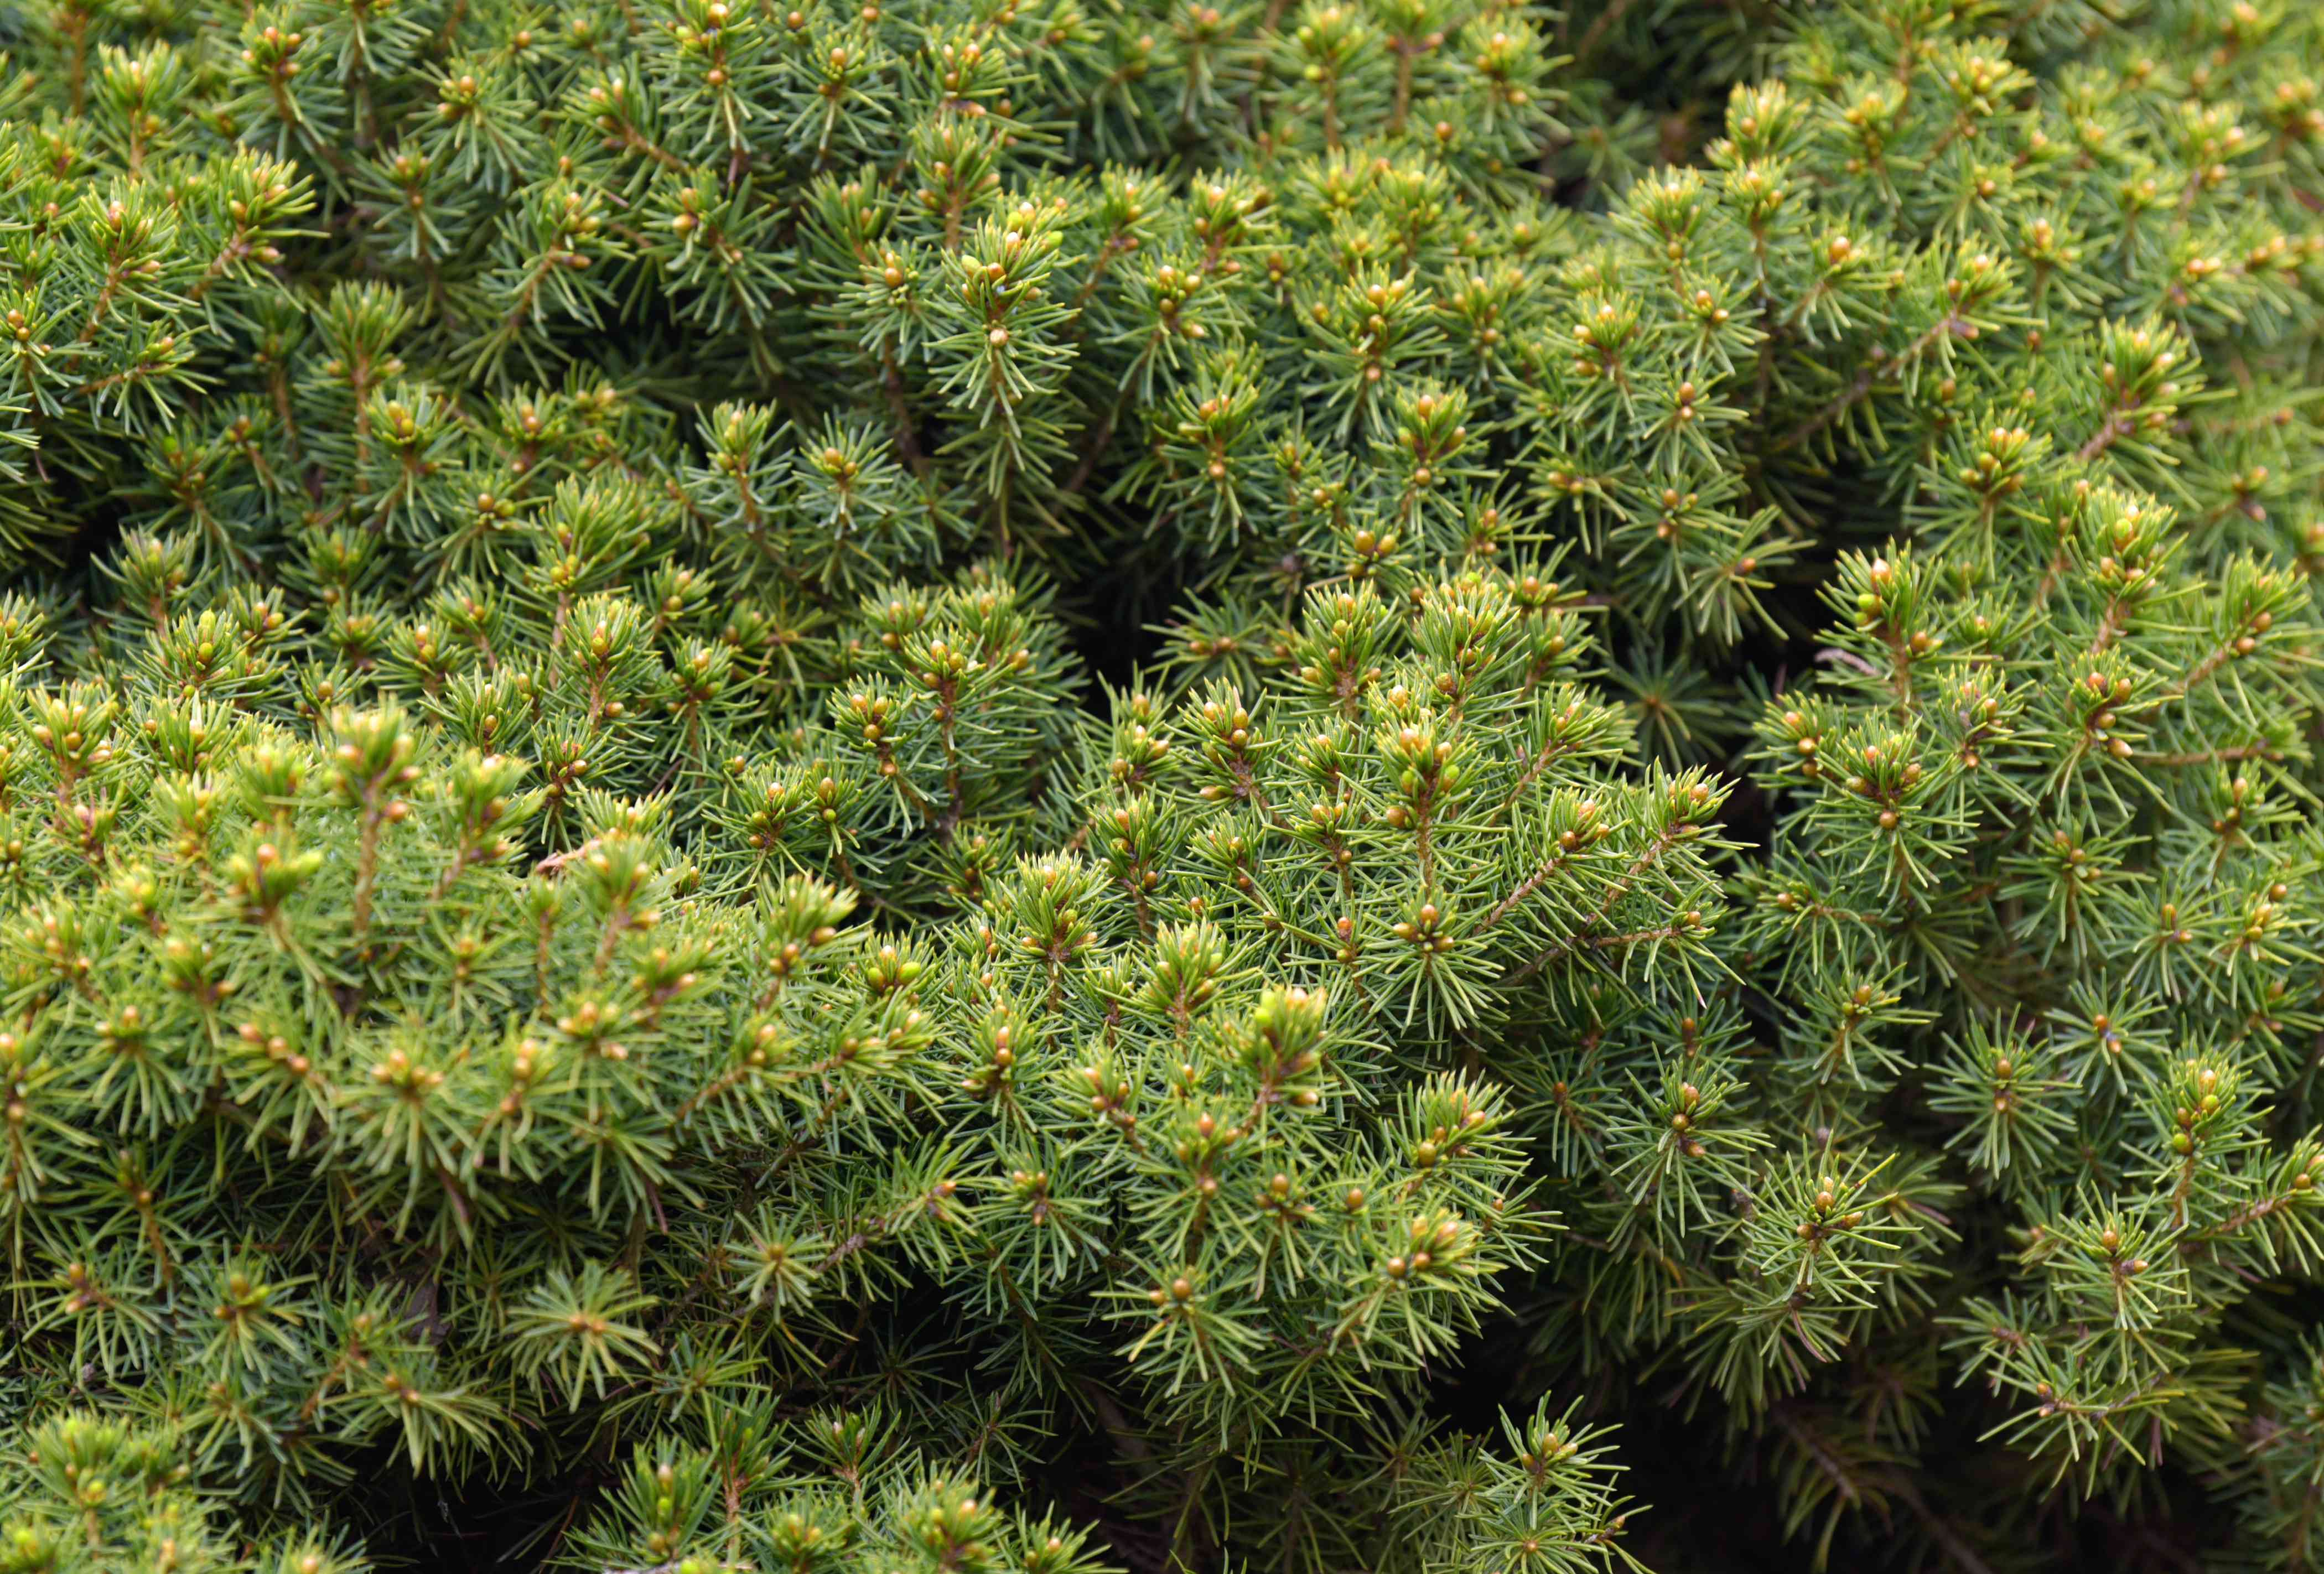 Dwarf Alberta tree branches with spiky-leafed branches